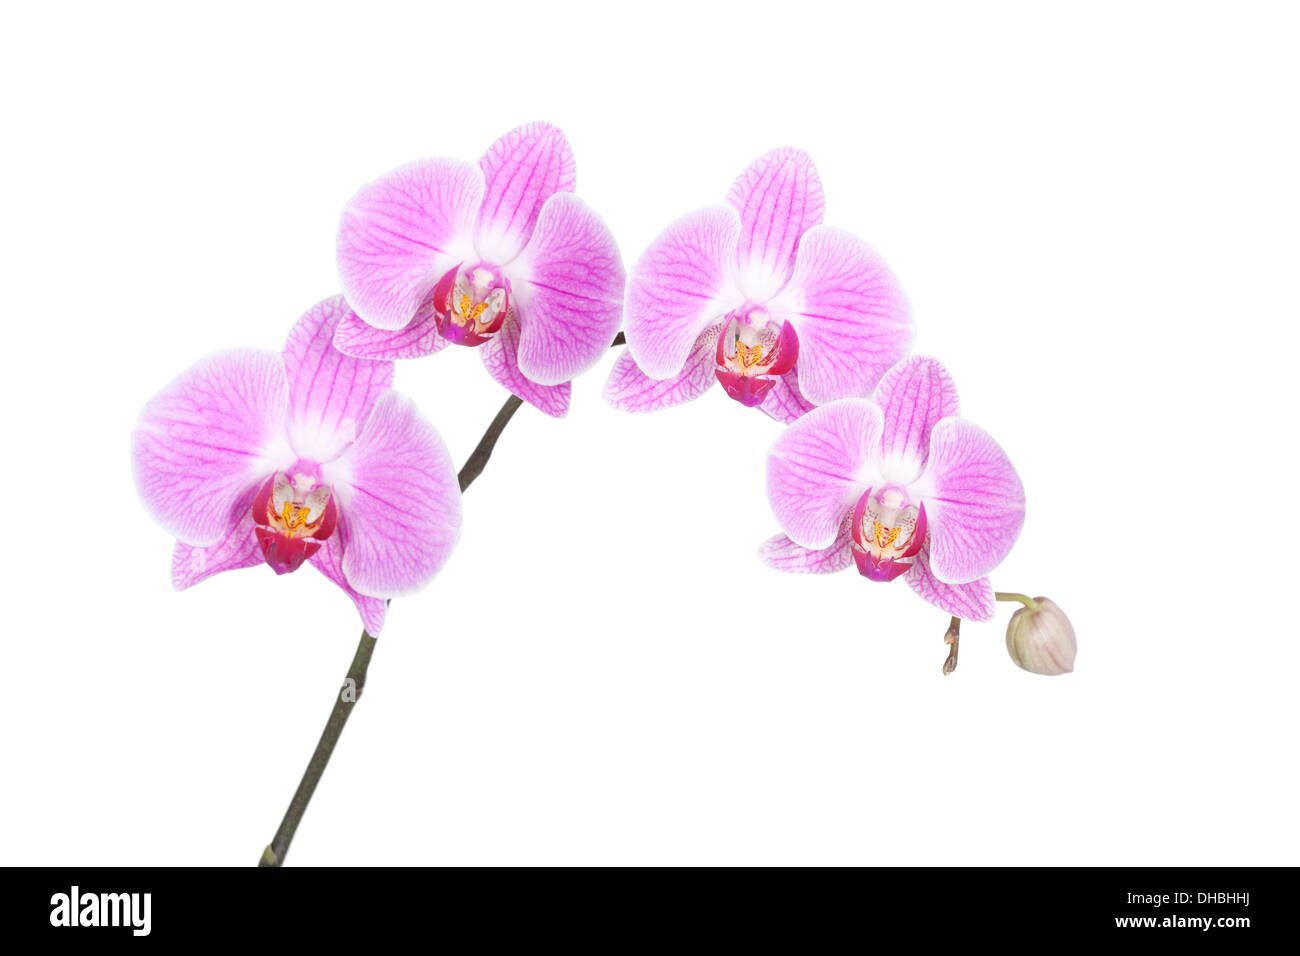 Pink Phalaenopsis Orchid isolated on white background with shallow depth of field. - Stock Image